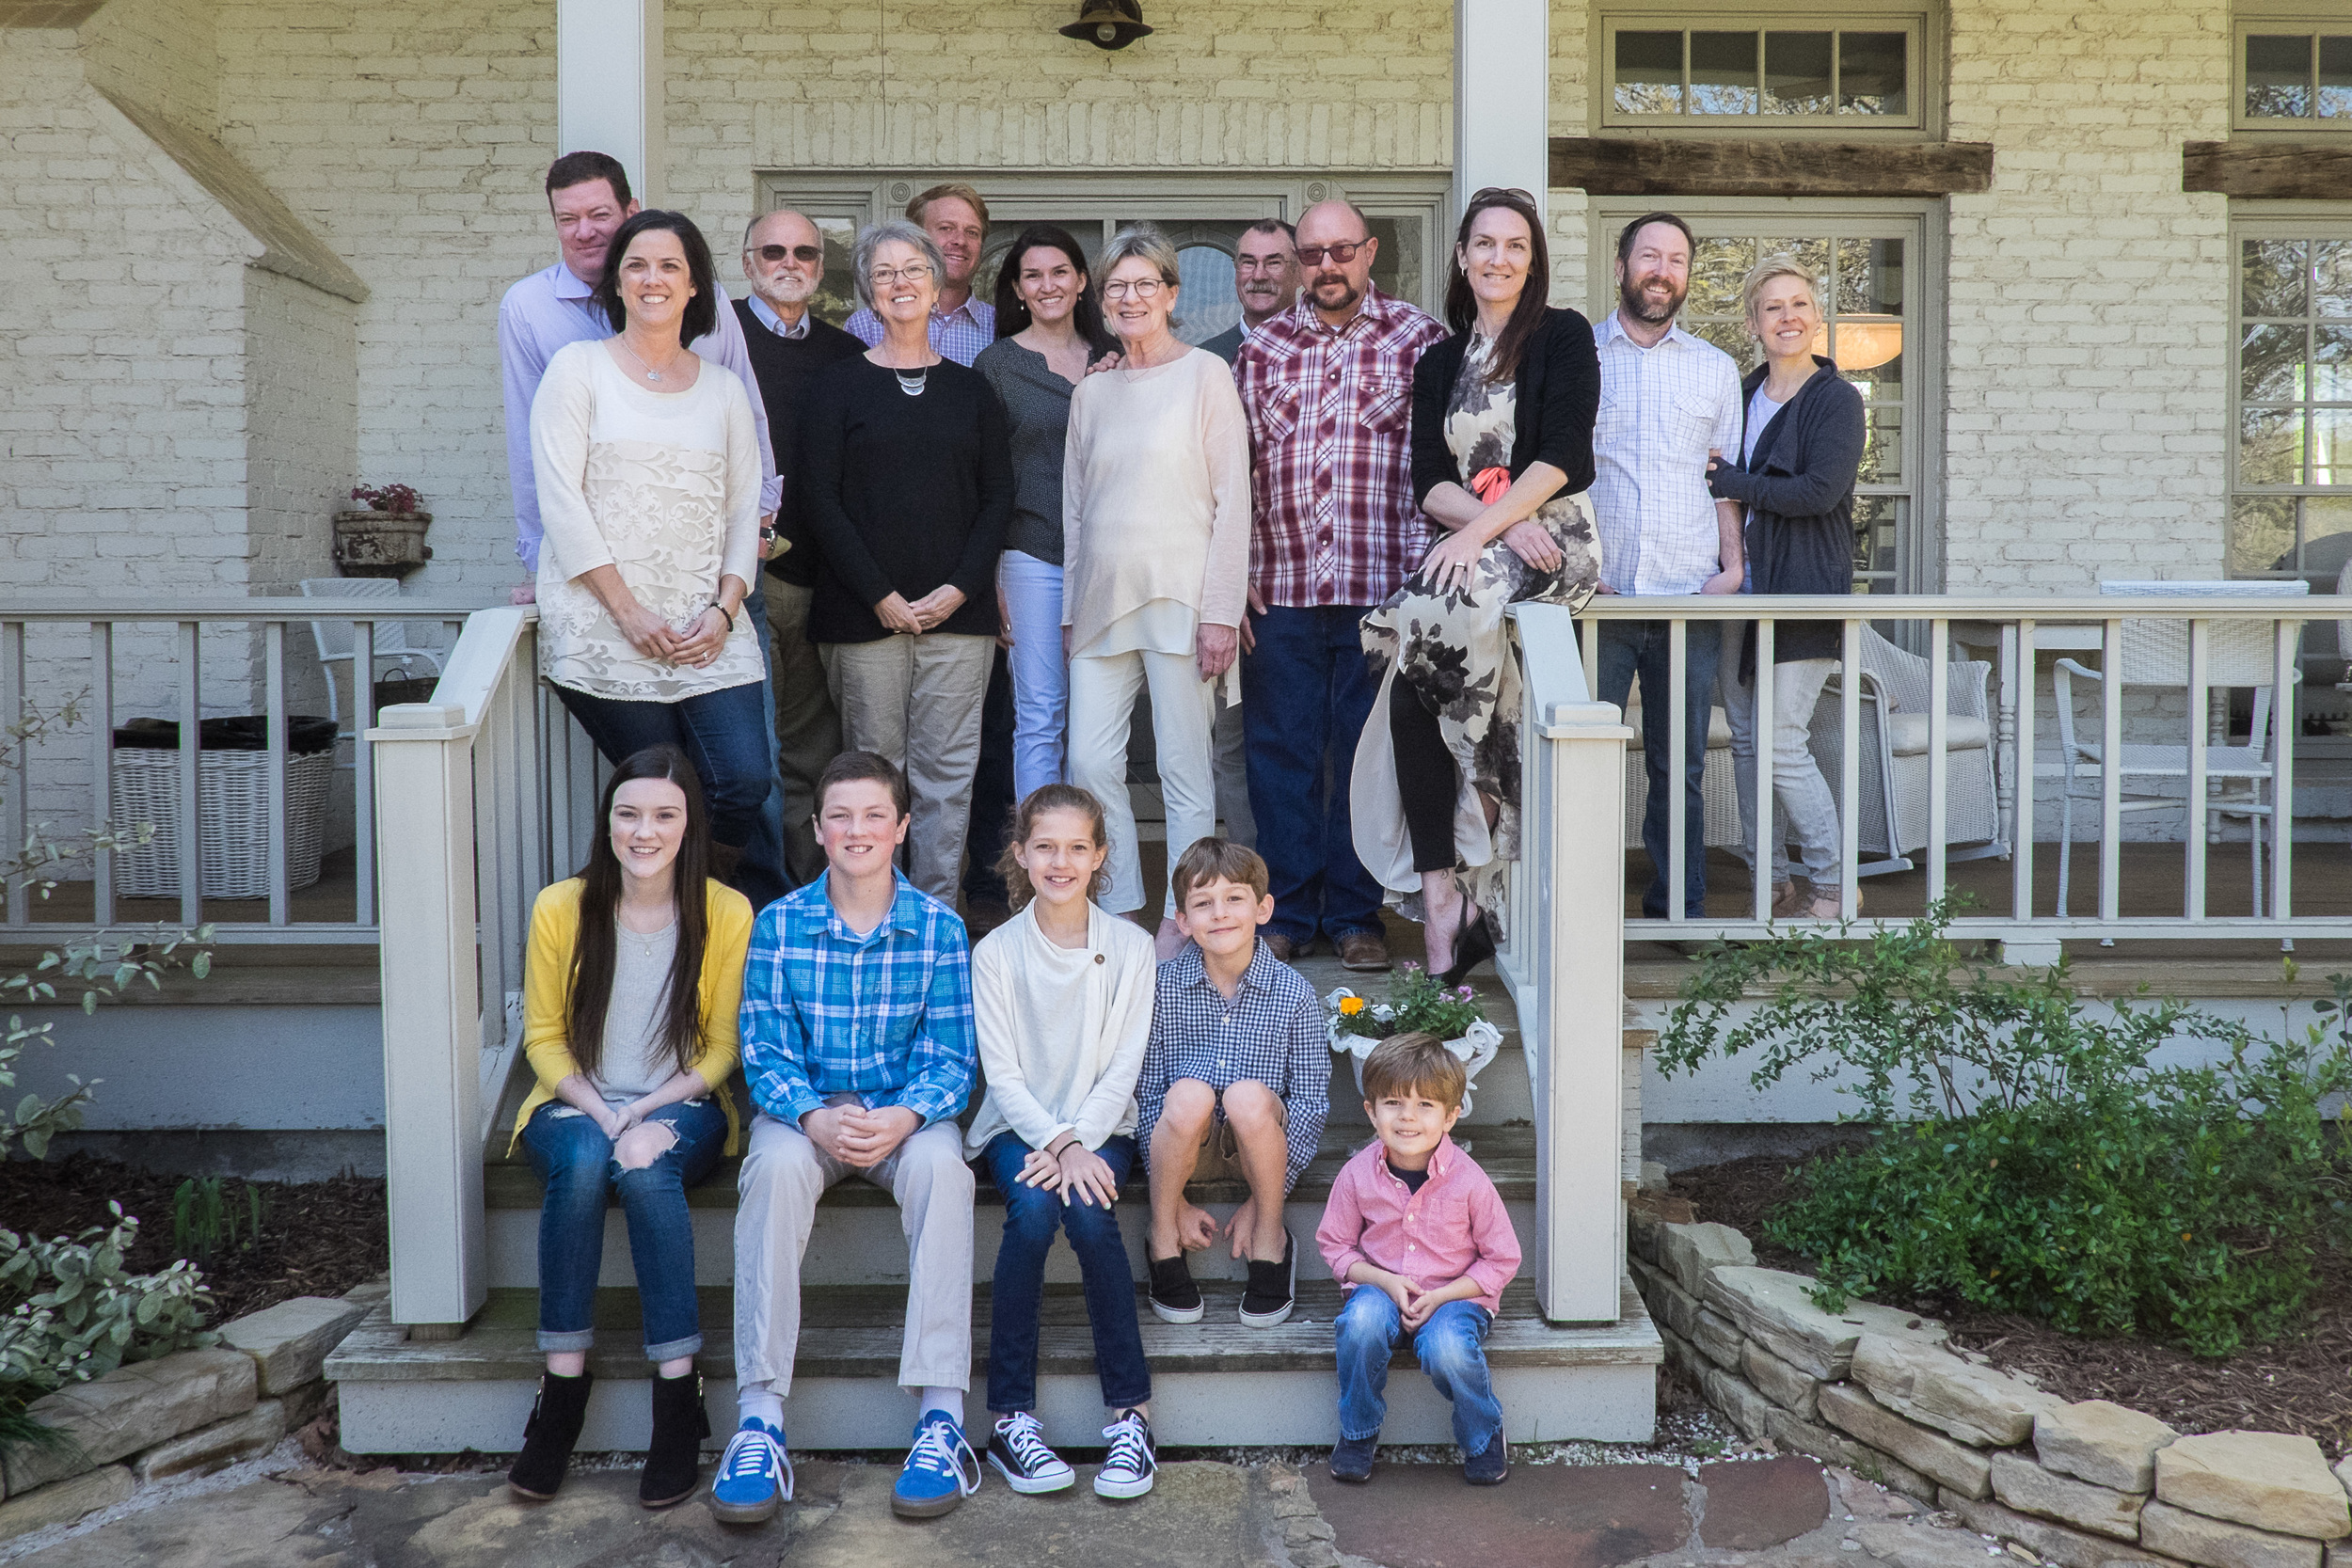 Oh yes, I did.  I subjected all of our Texas family to a group portrait.  And we'll do it all again when we can include Aunt Sandy, Aunt Maureen and Uncle Mel.   The lucky devils.